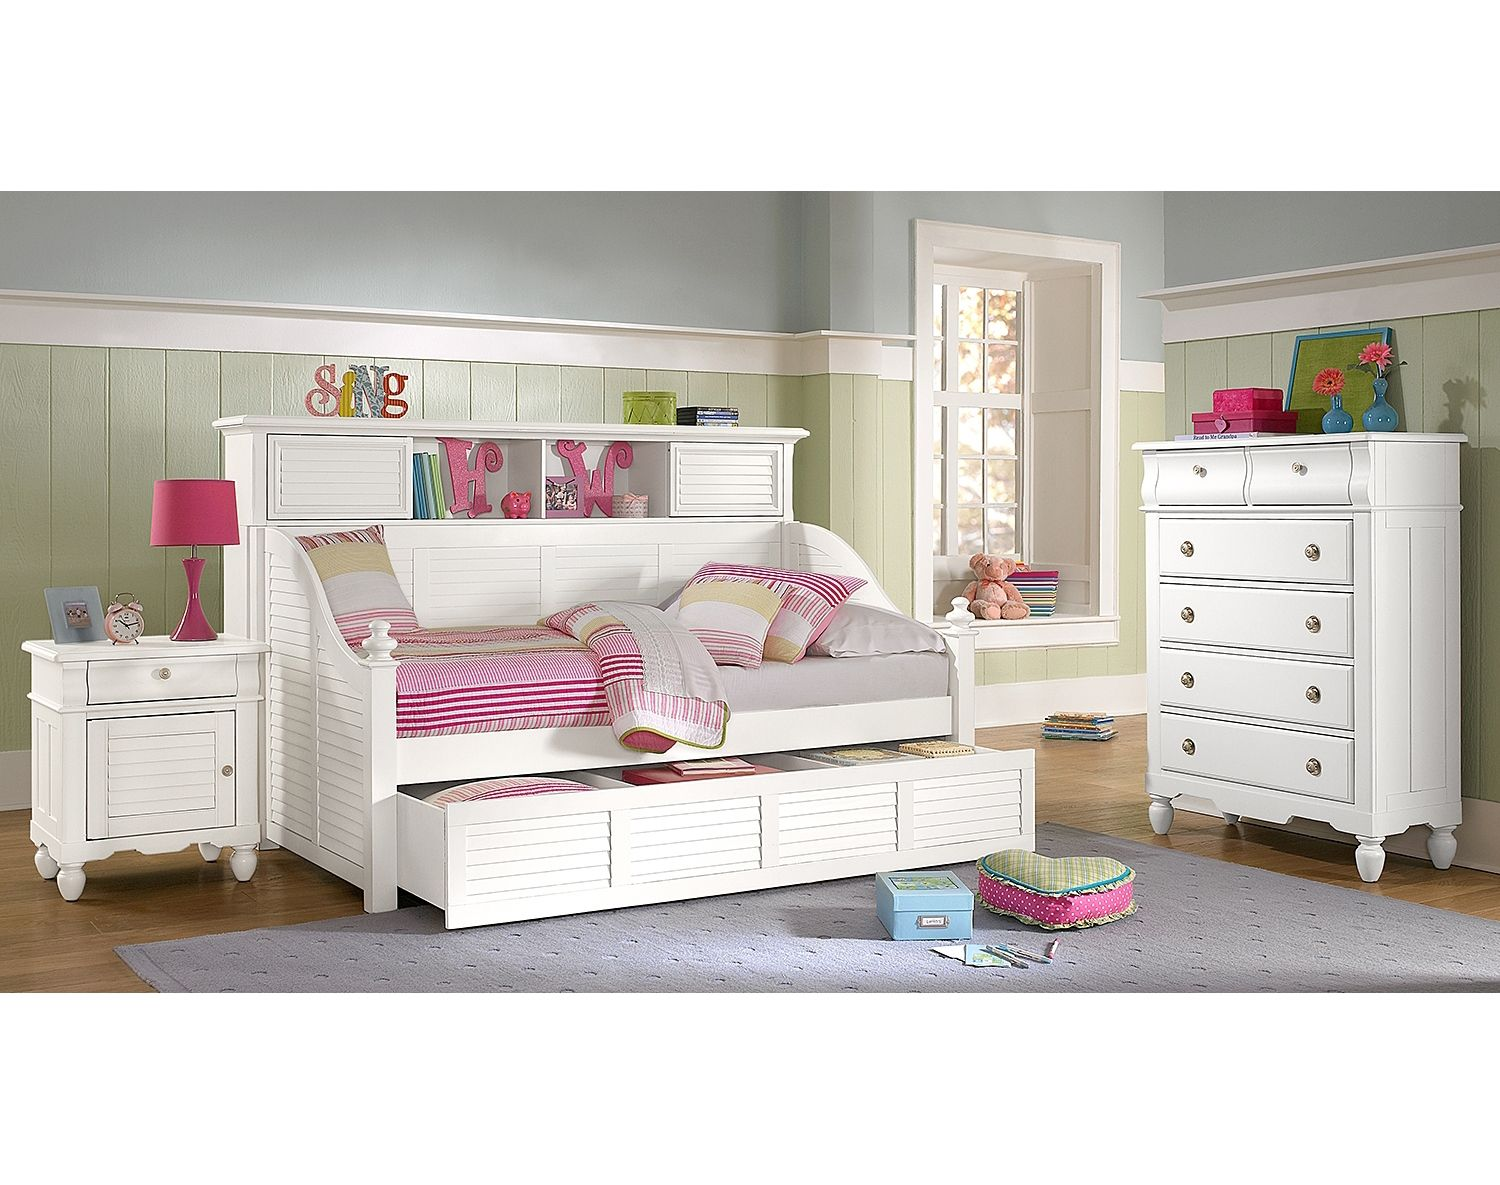 The Seaside White II Collection Value City Furniture